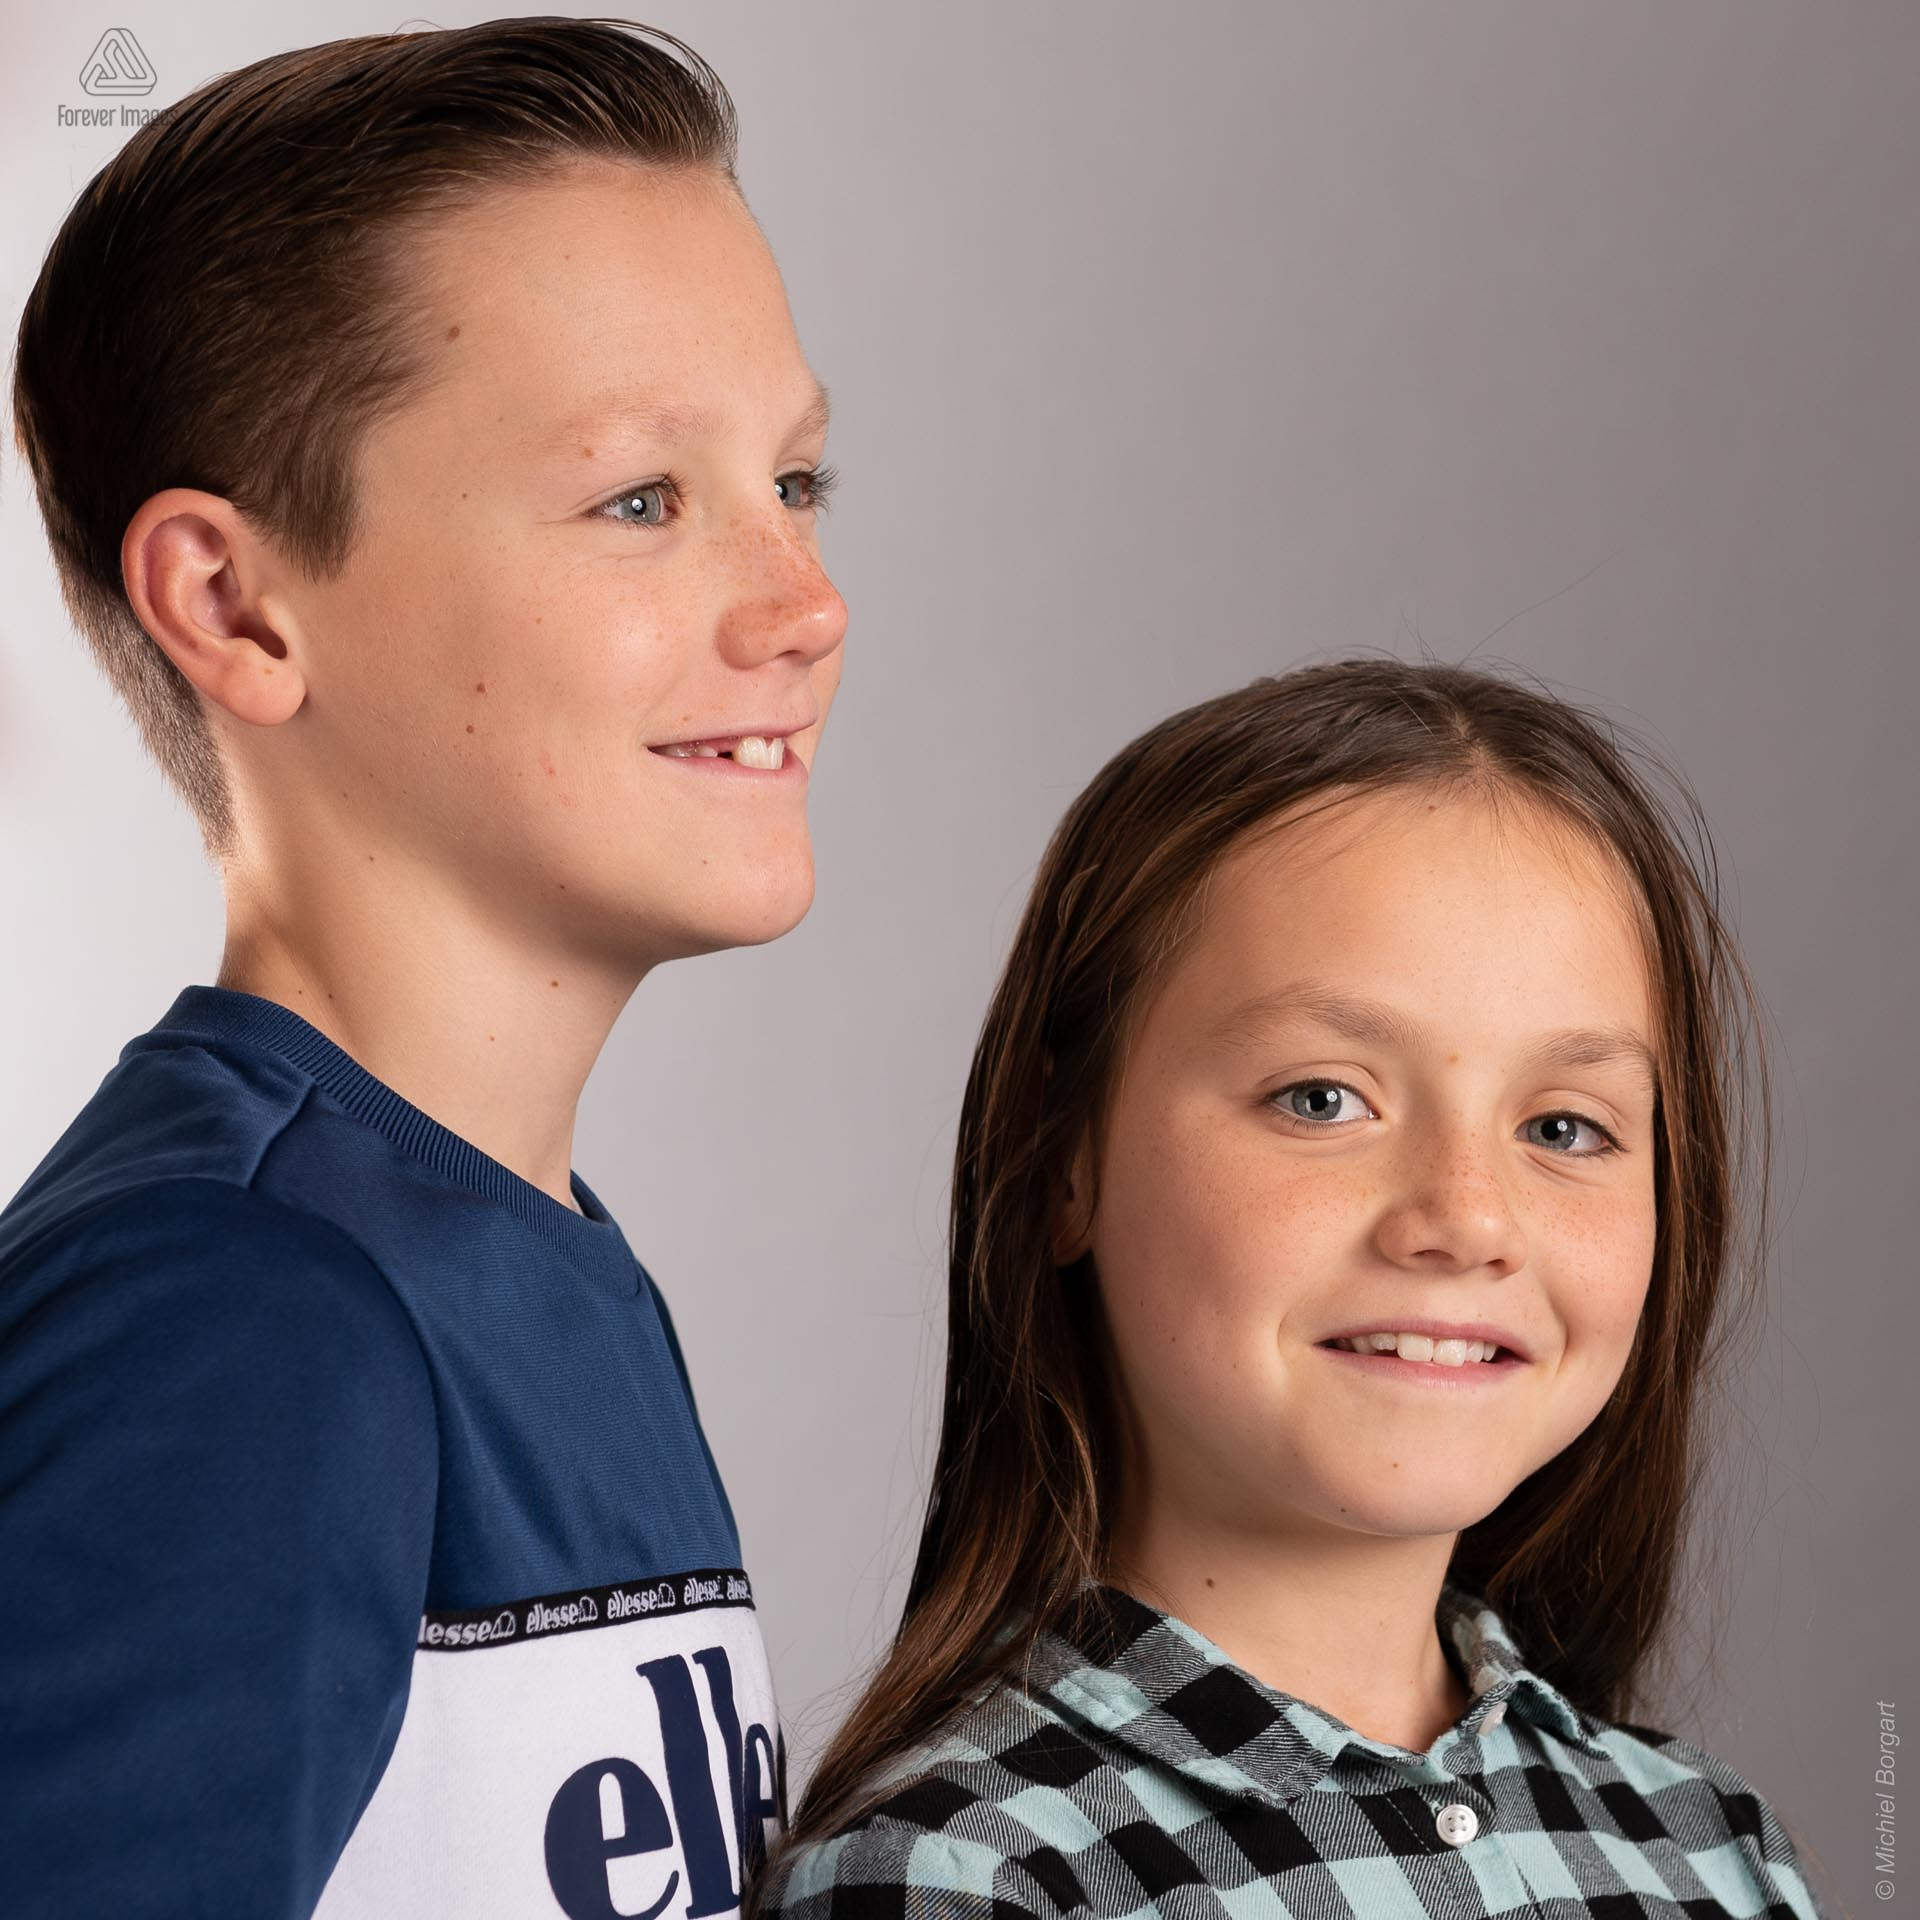 Portrait photo big brother with sister | Portrait Photographer Michiel Borgart - Forever Images.